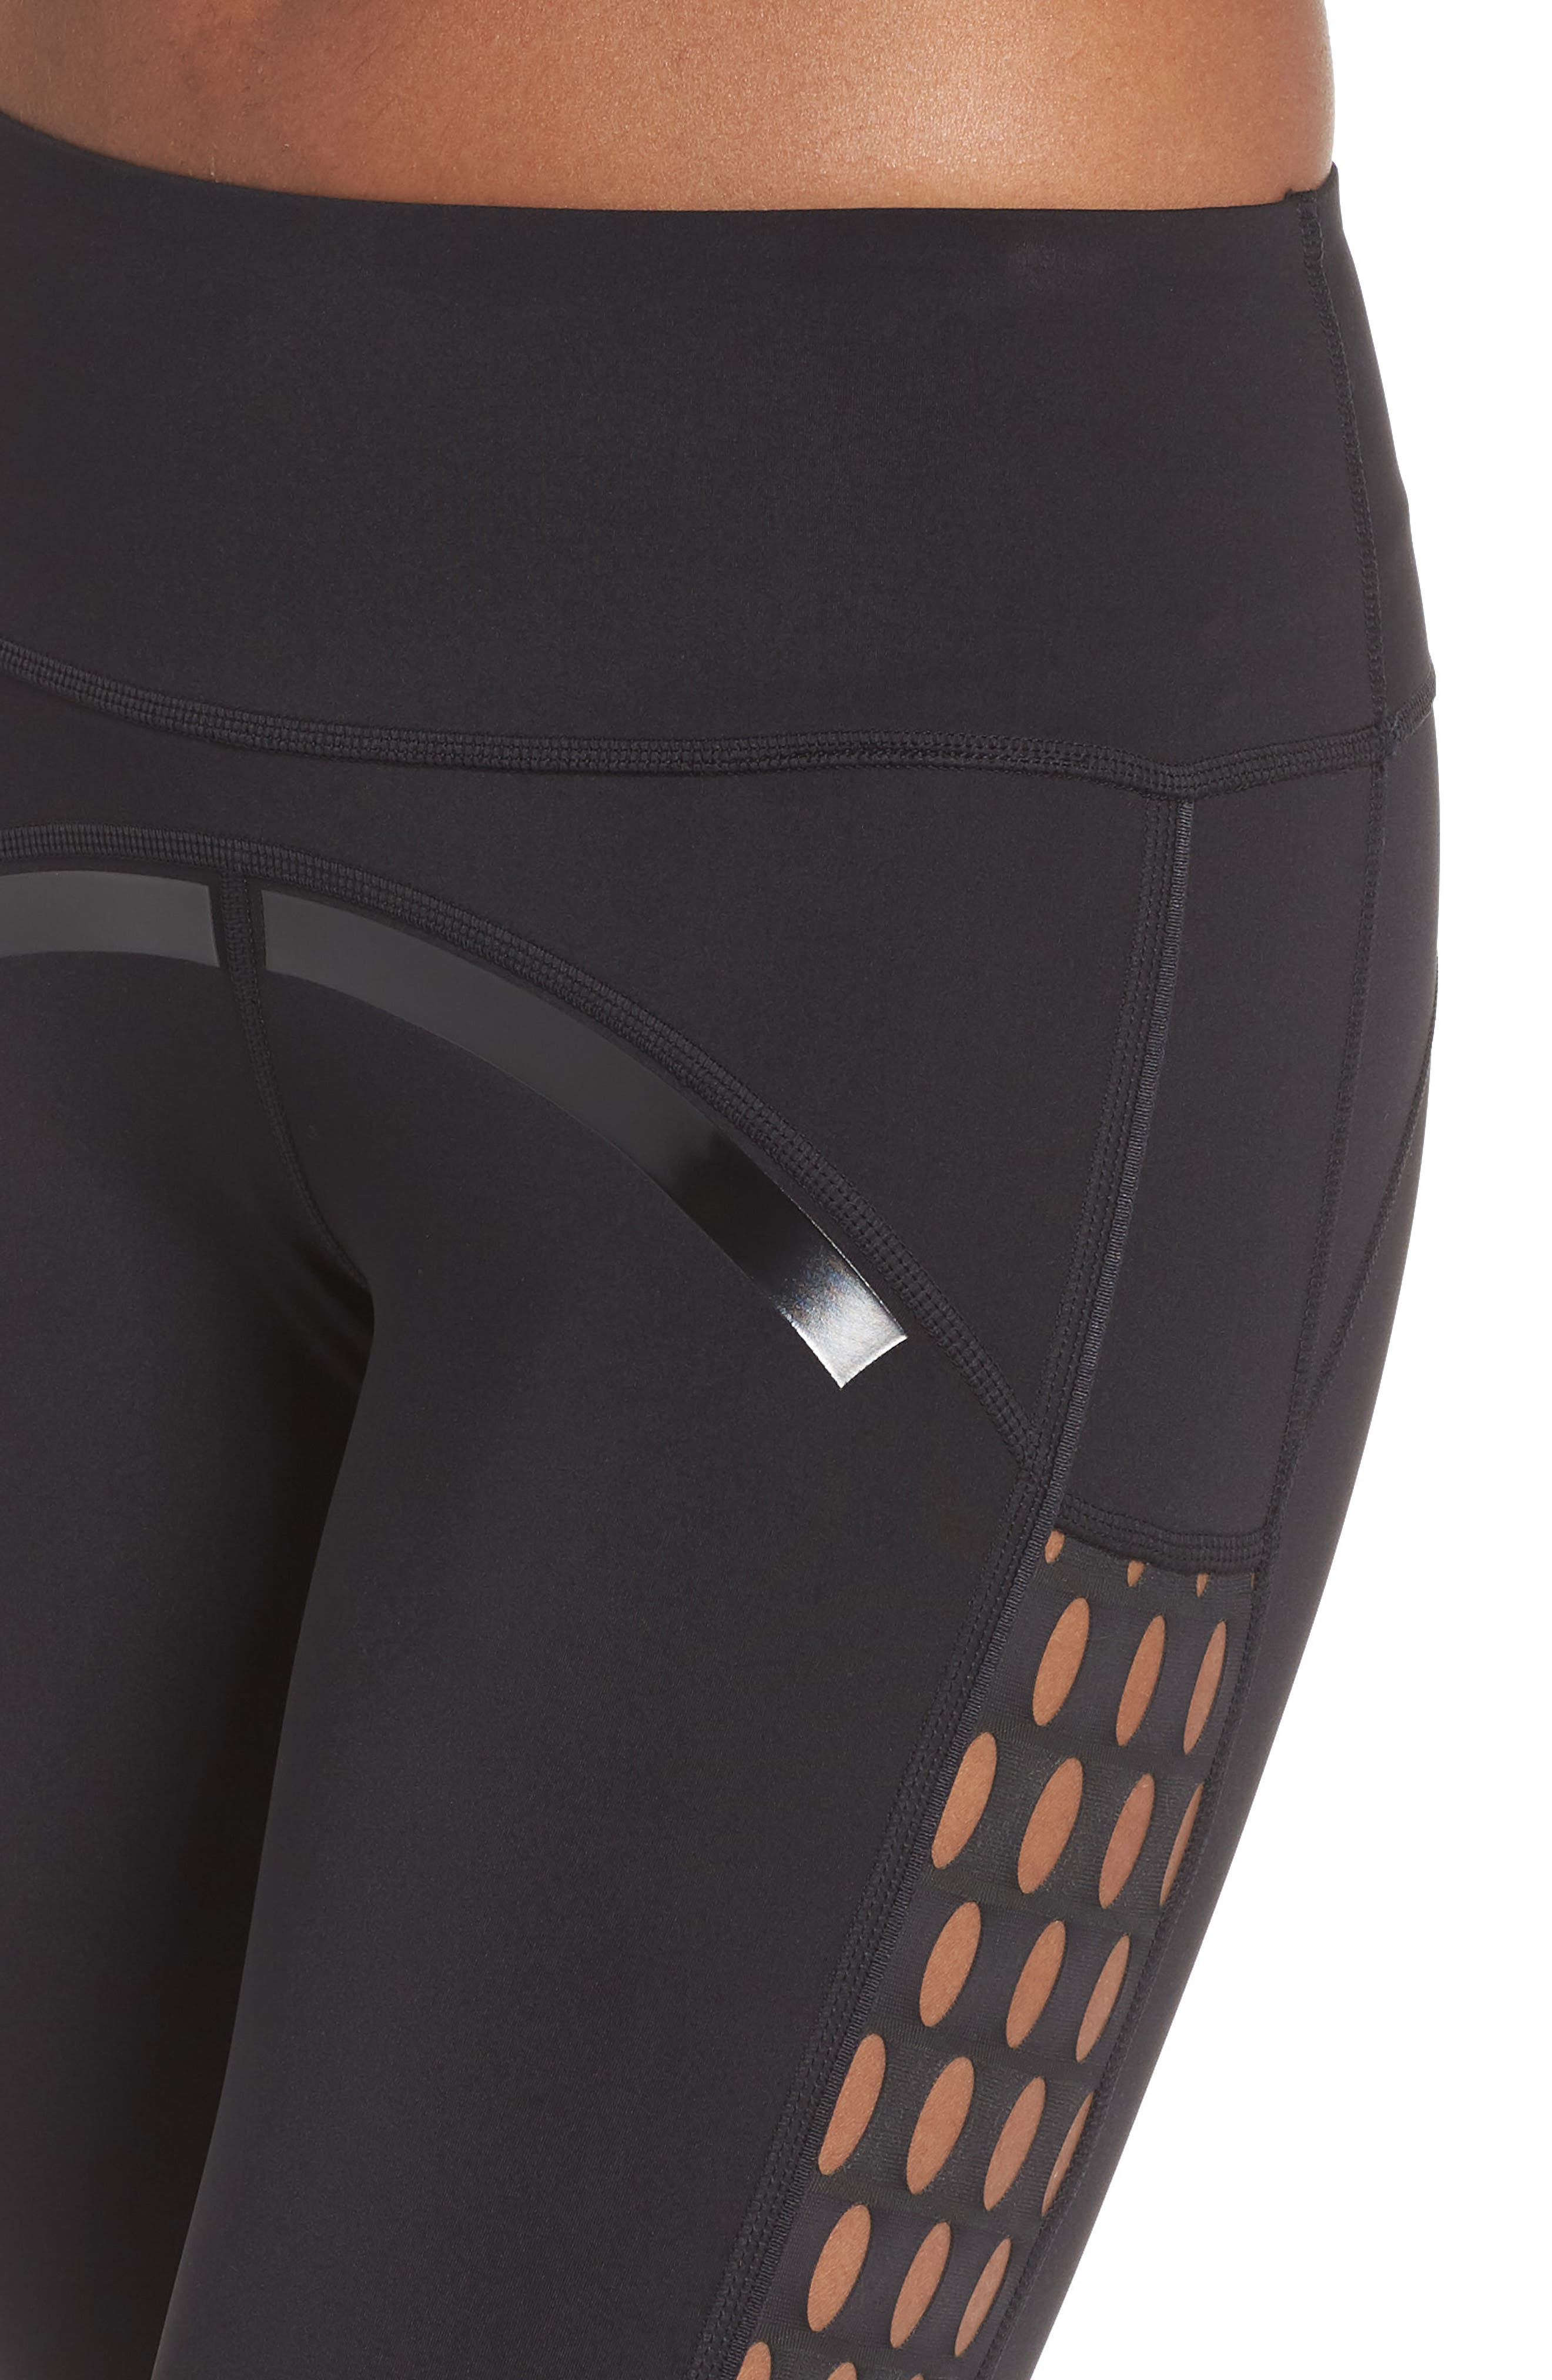 Run Training Tights,                             Alternate thumbnail 4, color,                             001